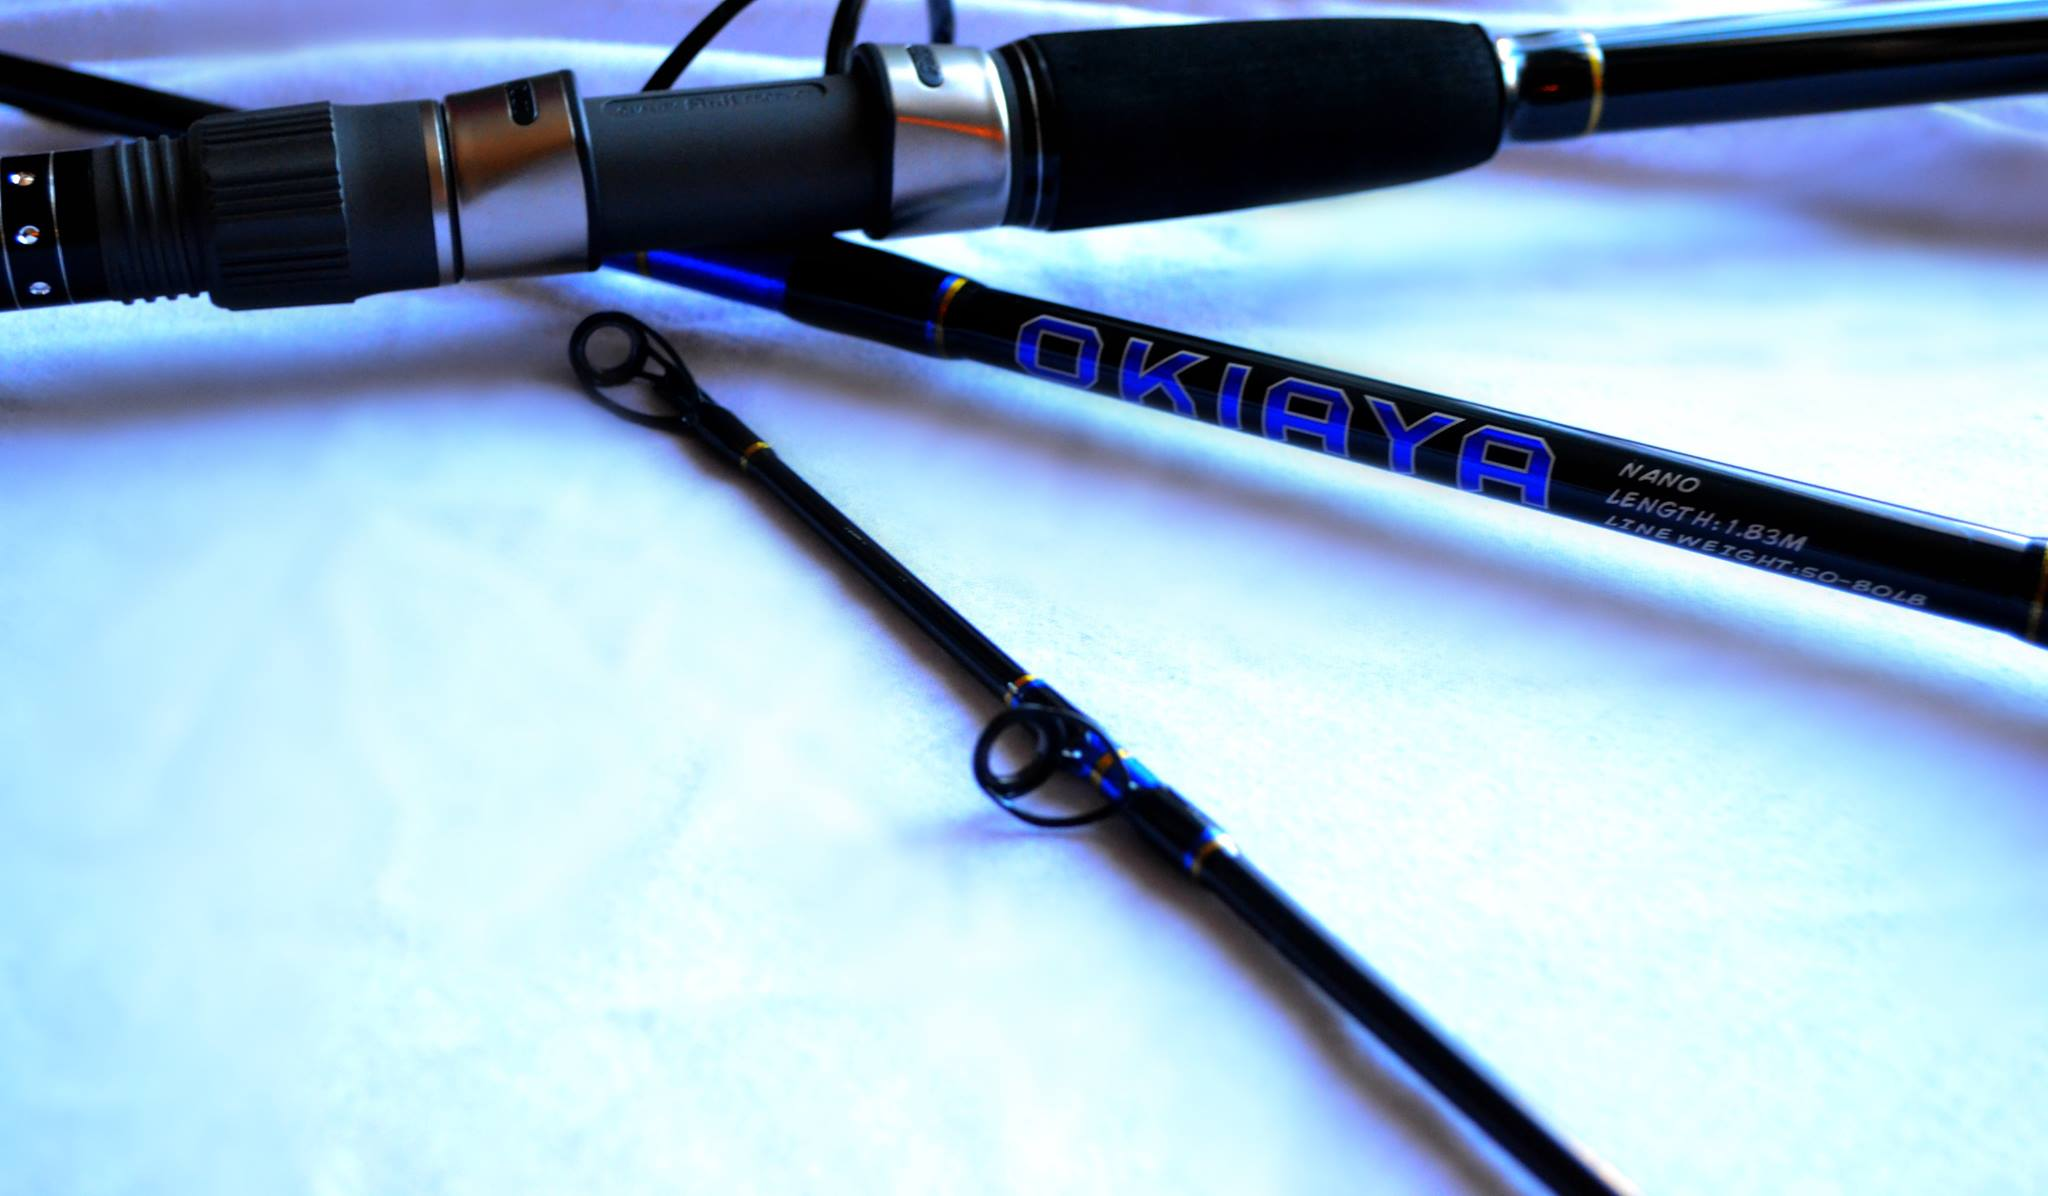 Okiaya carbon nano series 30 50lb tournament rods for Big game fishing rods